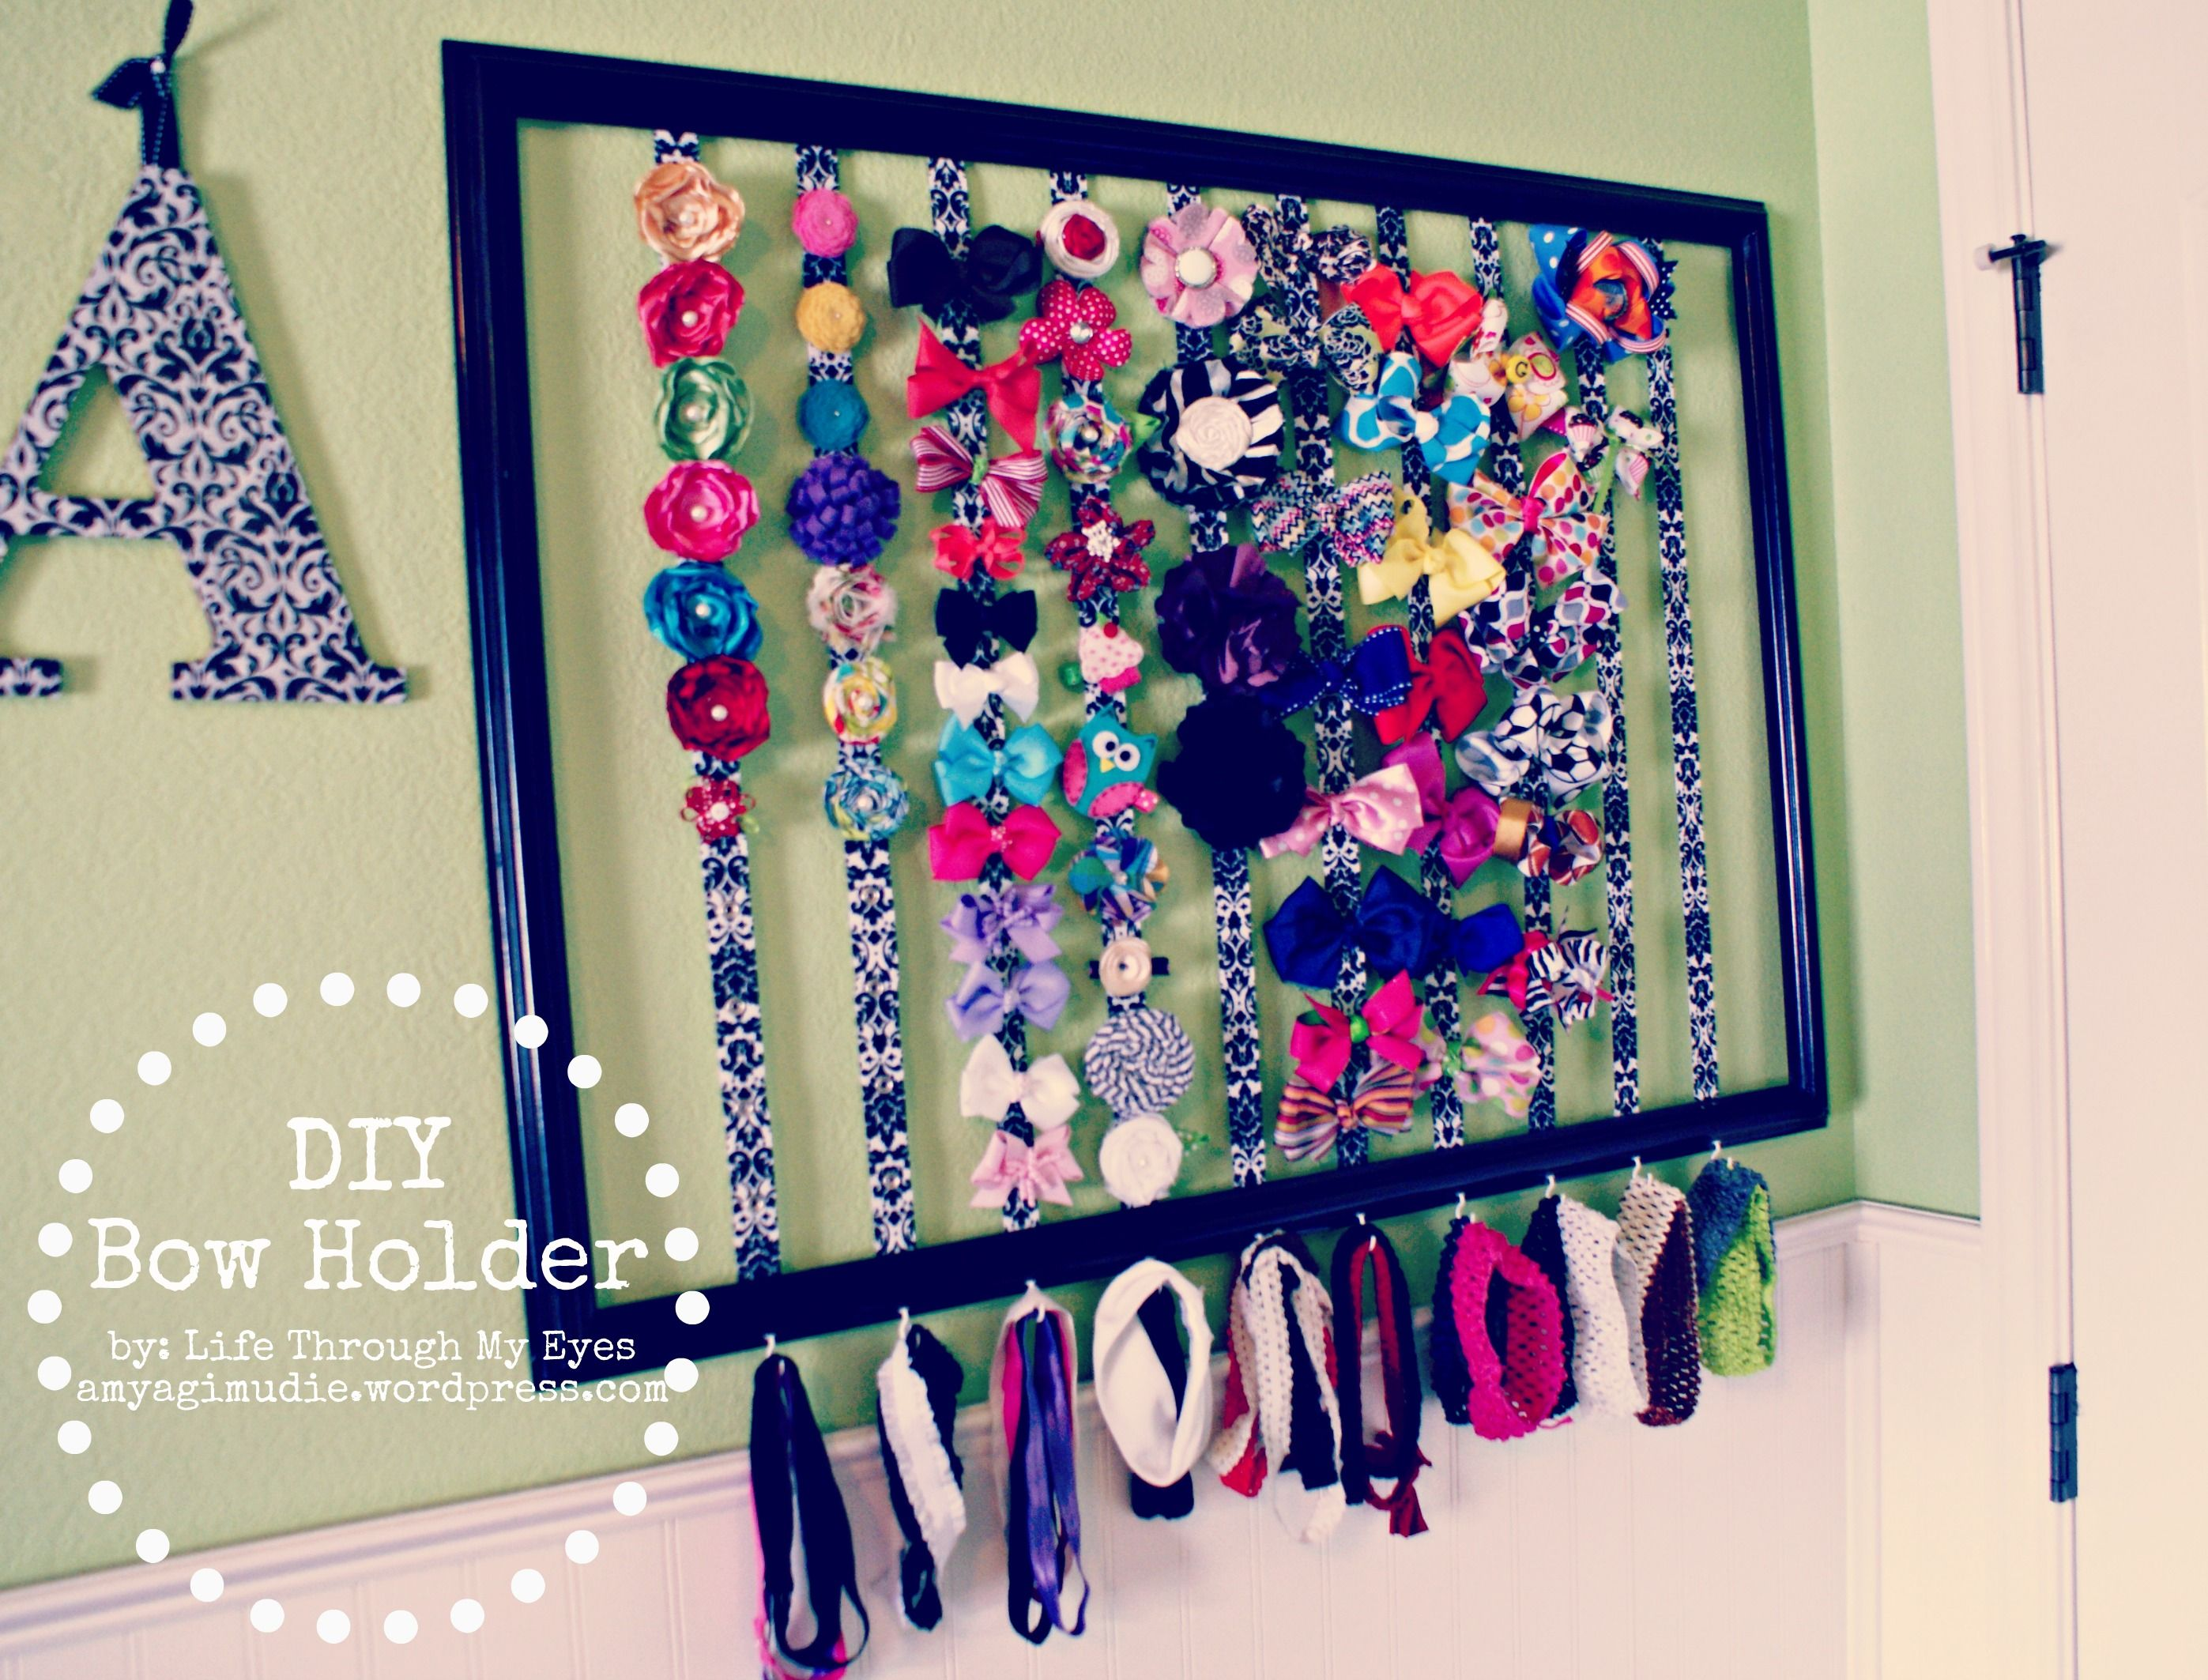 Diy Bow Holder Diy Bow Diy Bow Holder Bow Holder